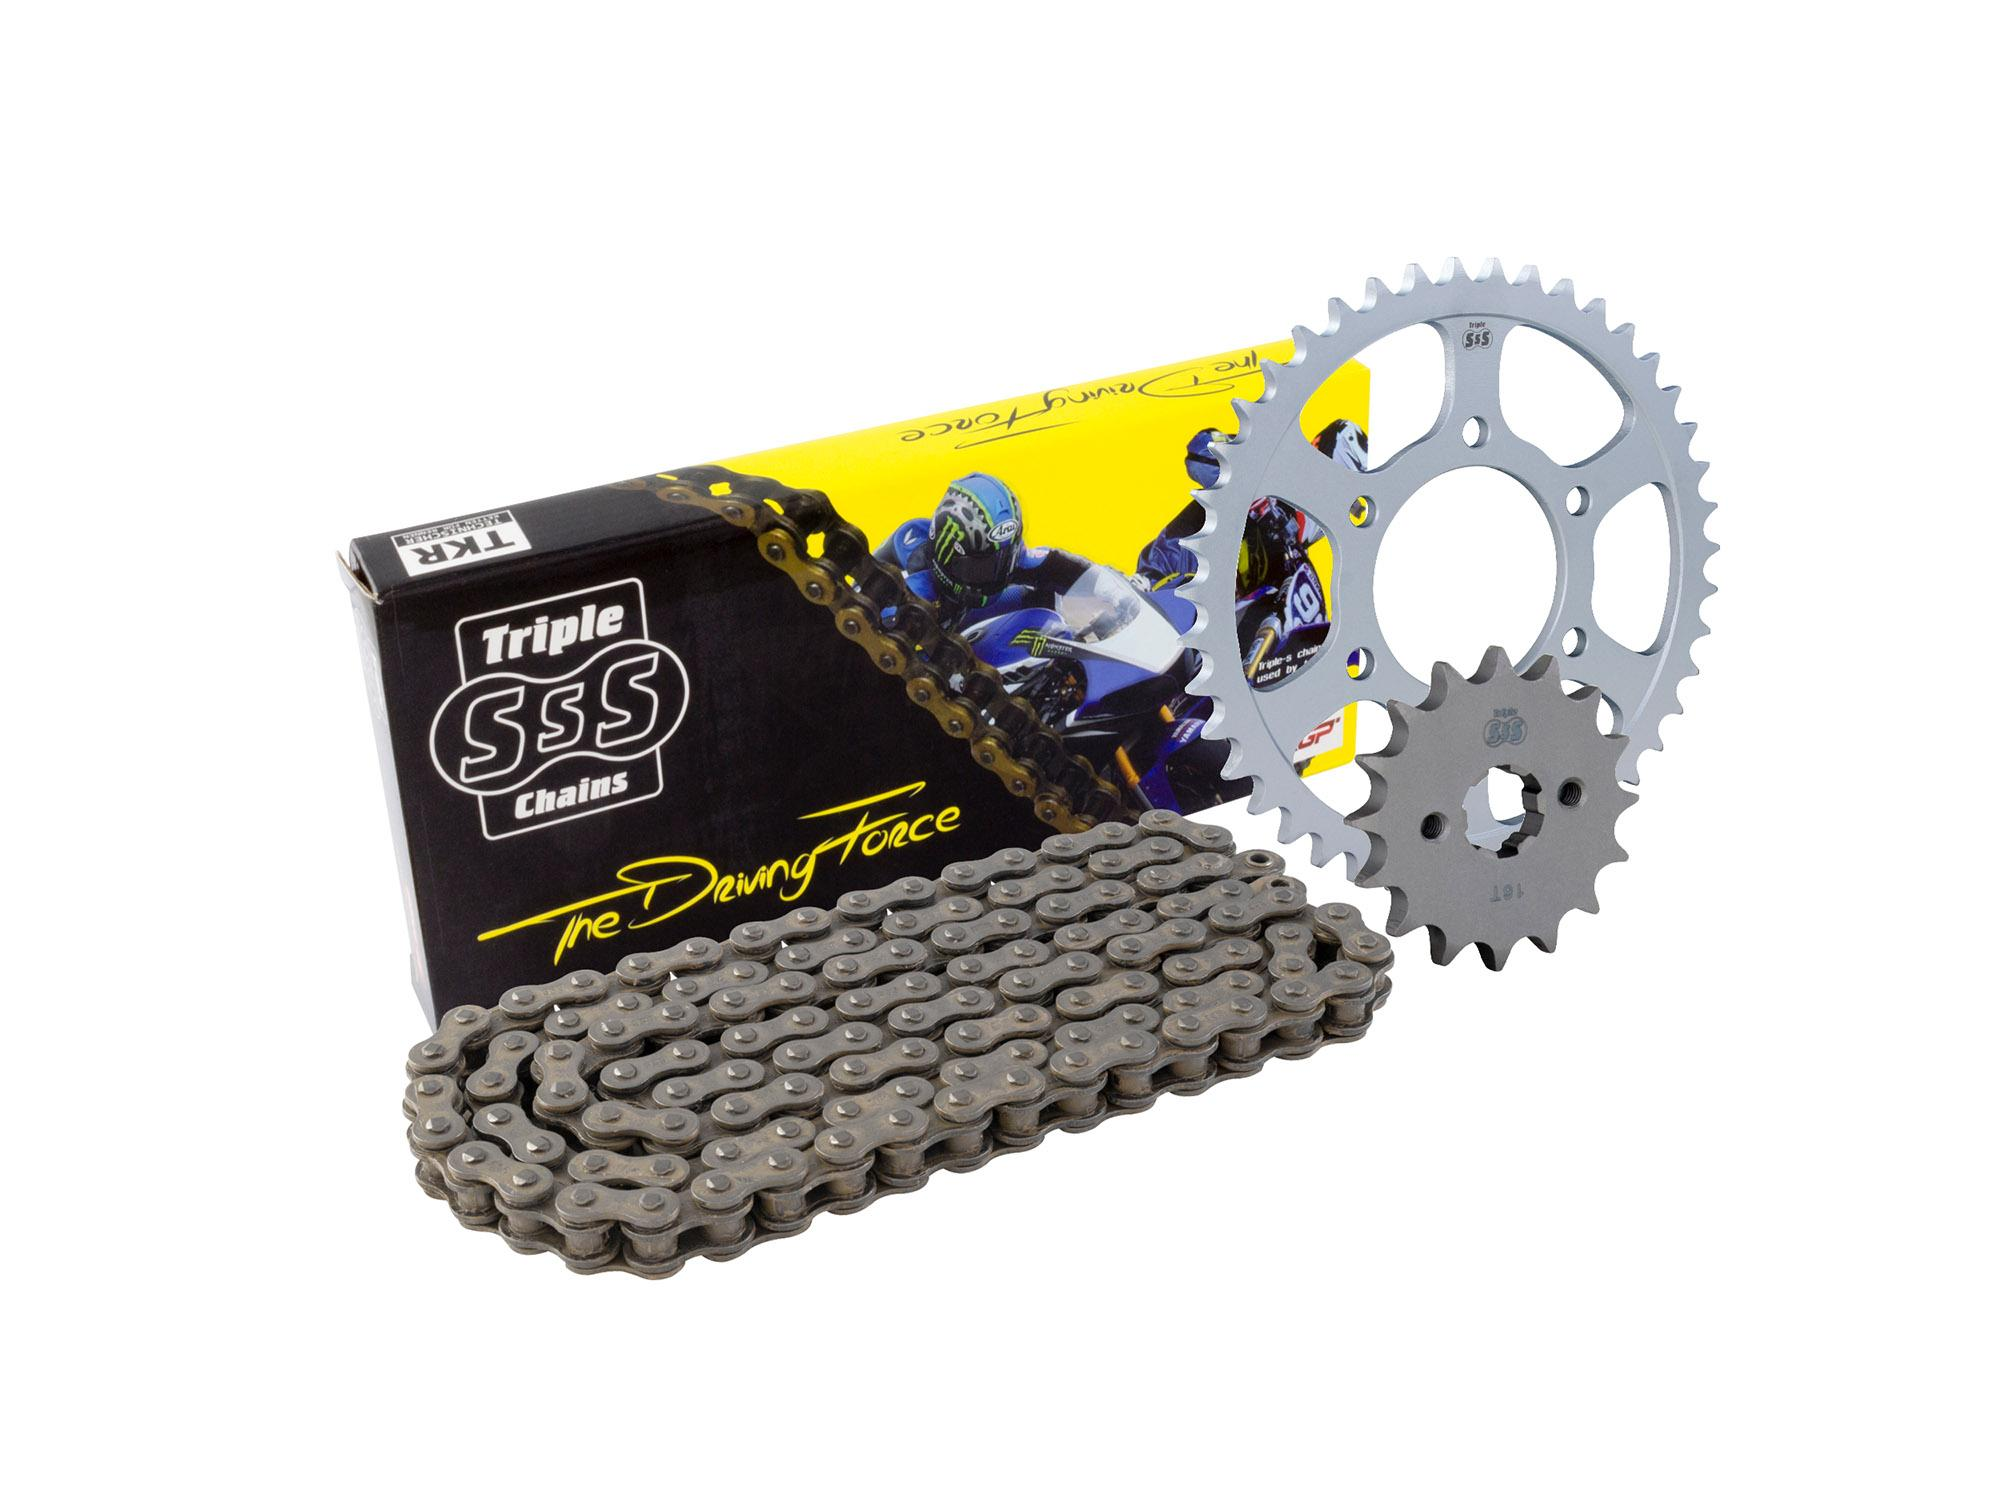 Ducati 750 Monster 98-01 Chain & Sprocket Kit: 15T Front, 41T Rear, HD O-Ring Black Chain 520H 100Link